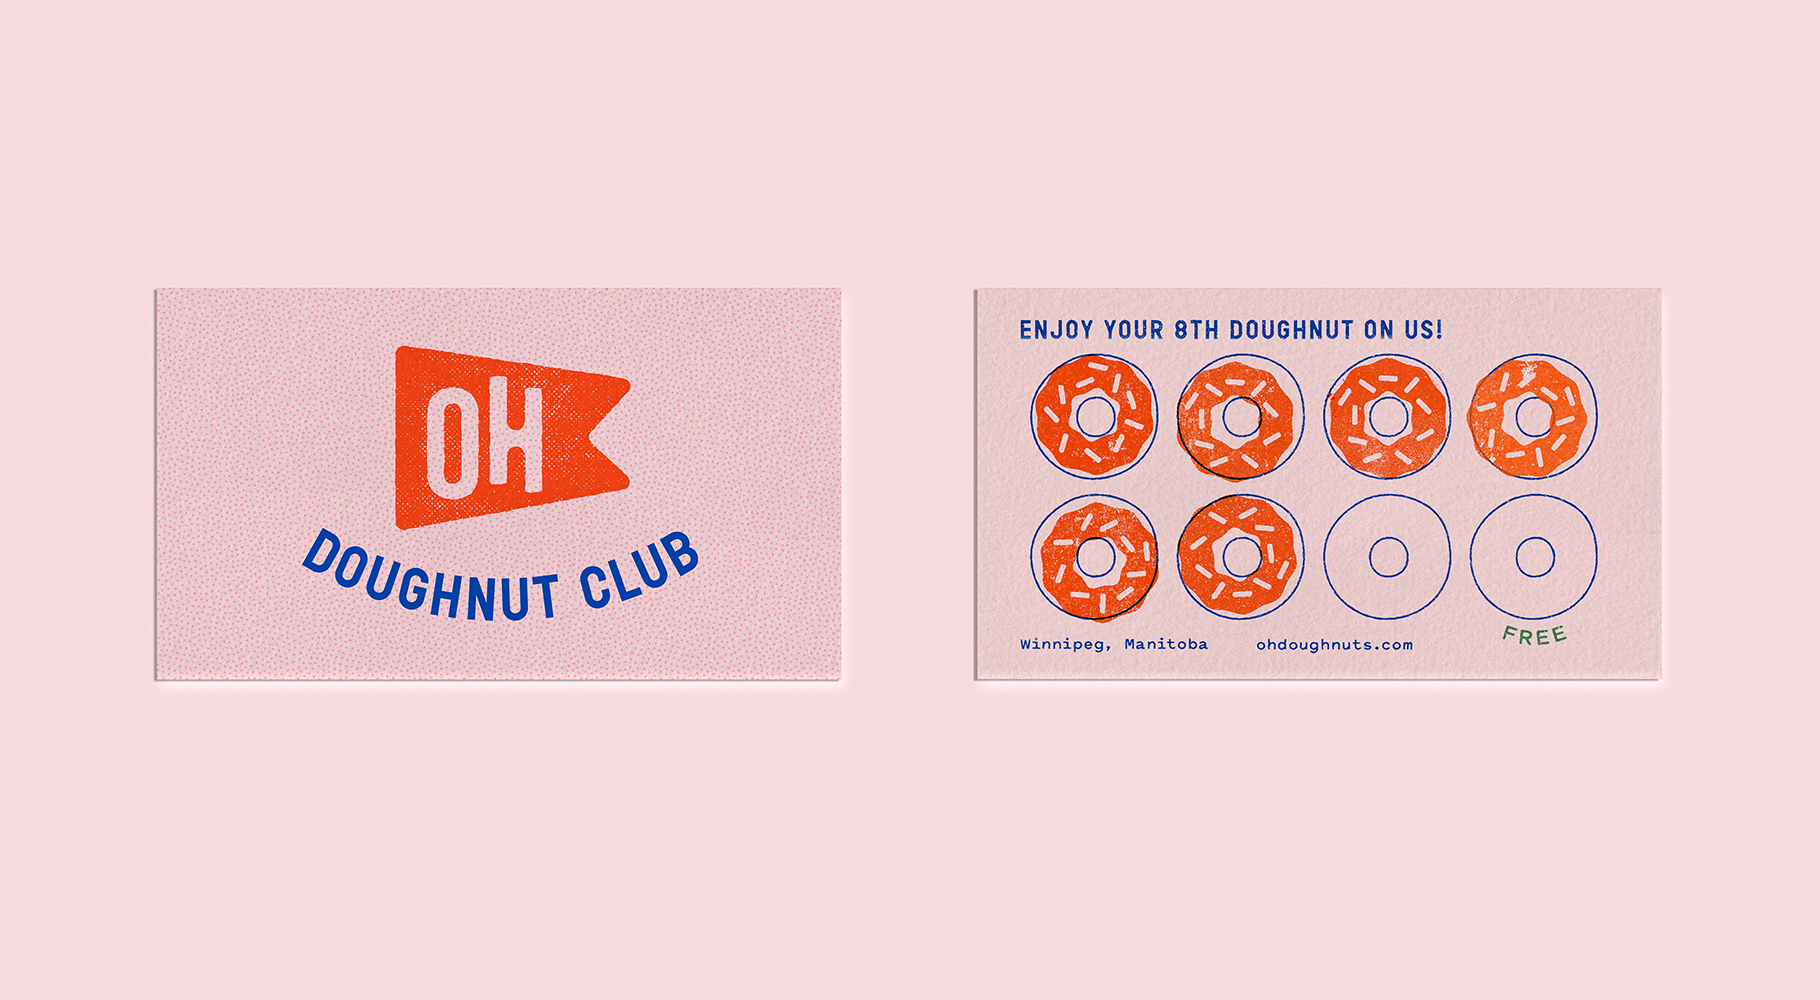 """An image of the front and back of an Oh Doughnuts rewards card. The front says """"Oh Doughnut Club"""" with """"Oh"""" on a flag graphic. The back has doughnut shapes with some stamped with an orange icing and sprinkle stamp."""